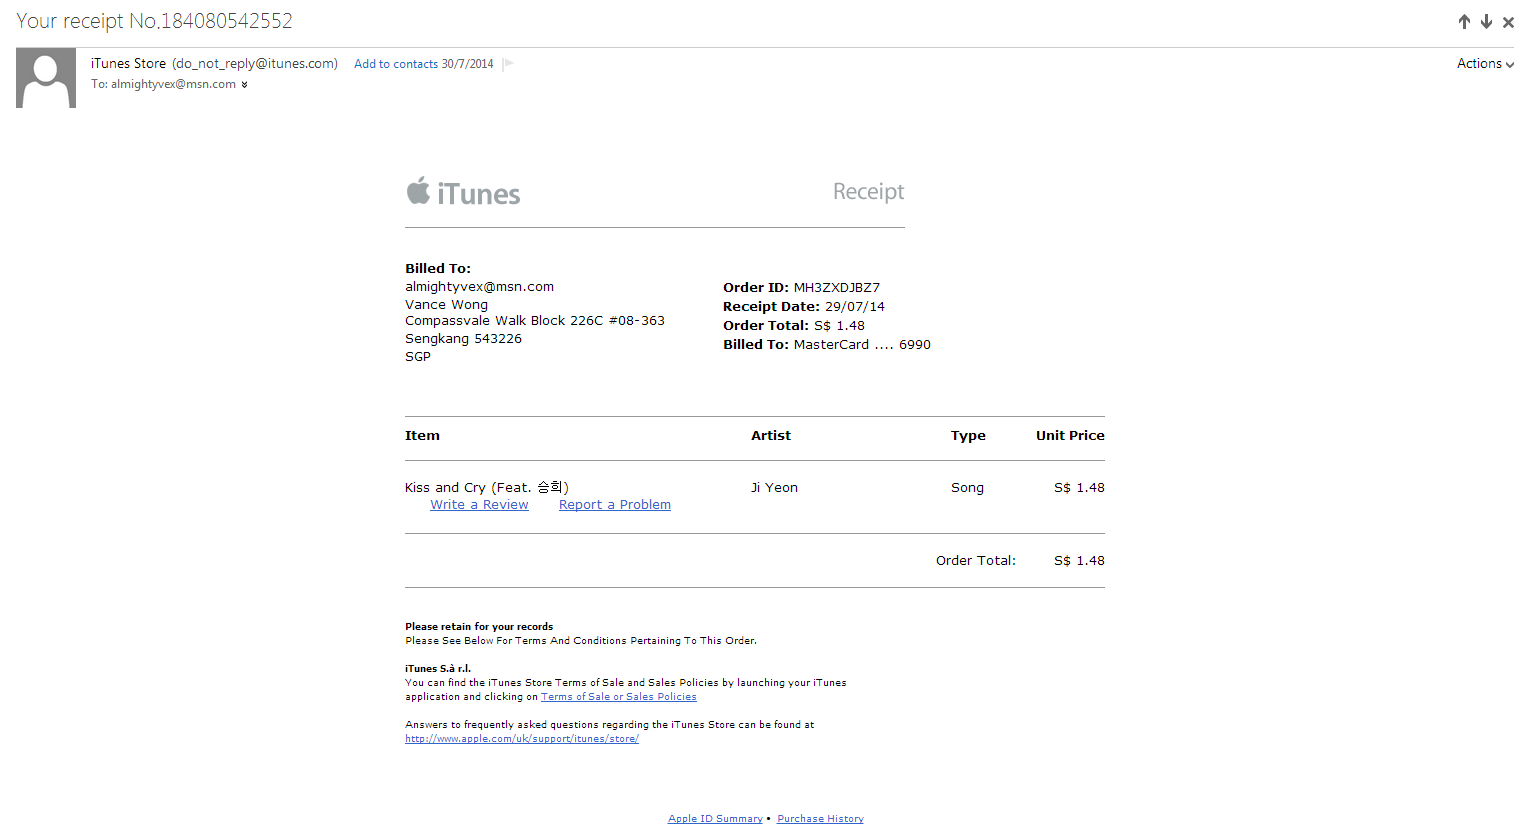 How does iTunes make you pay for music?